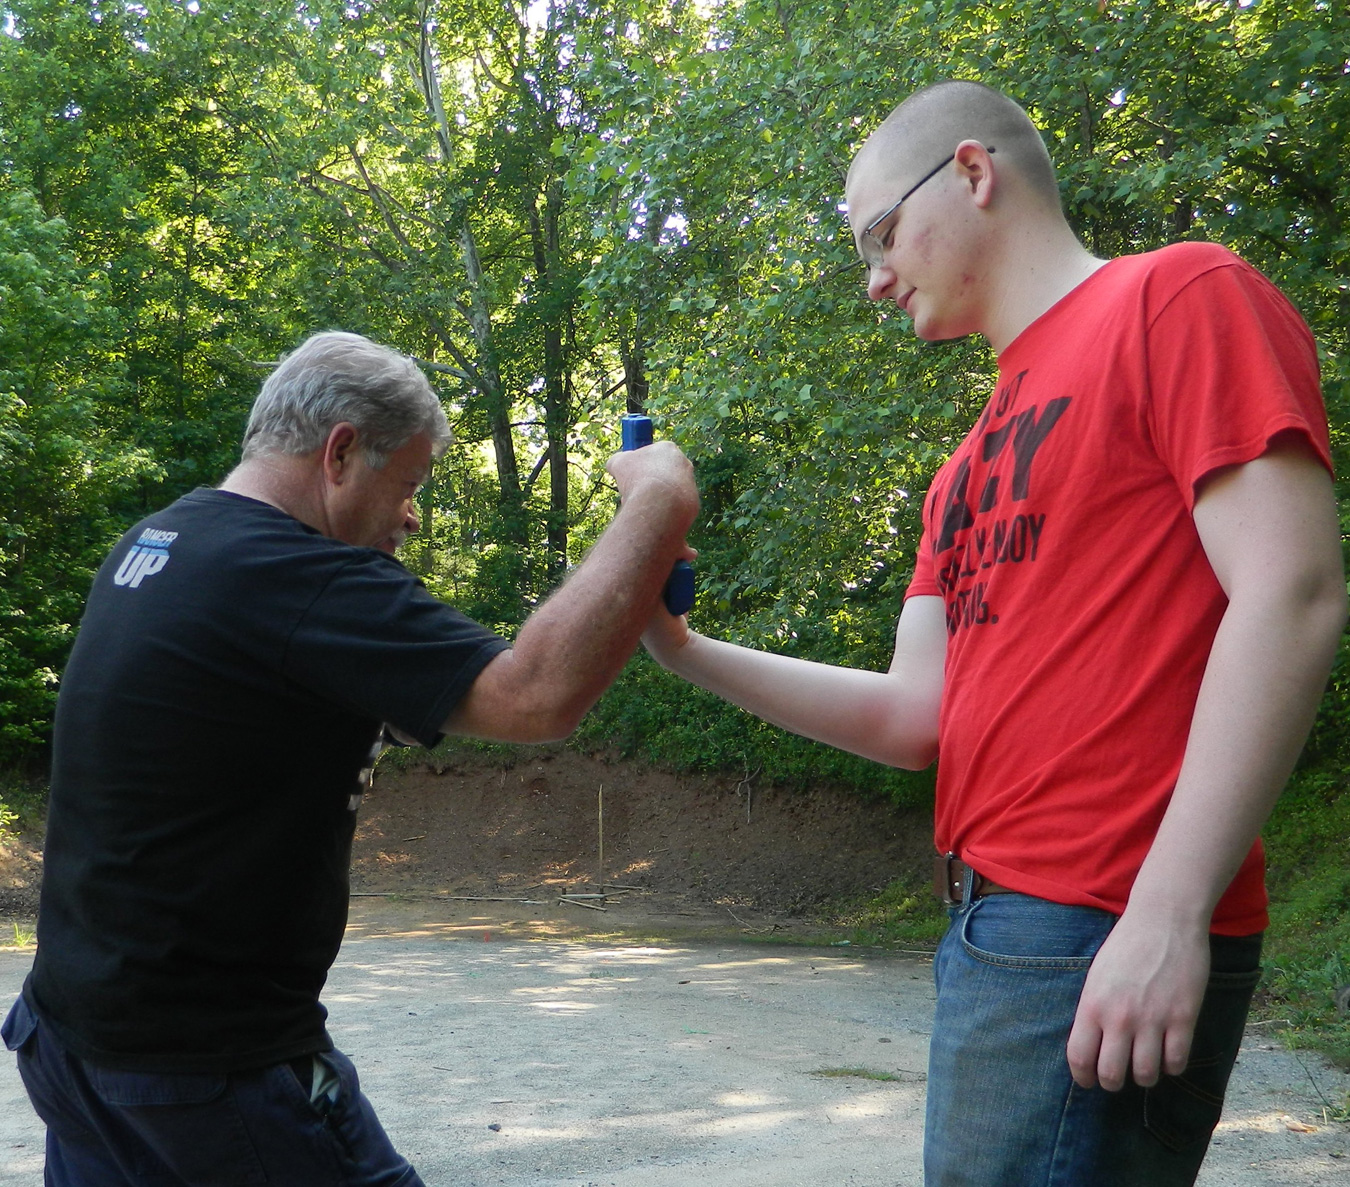 INstrustor demonstrating how to disarm a suspect